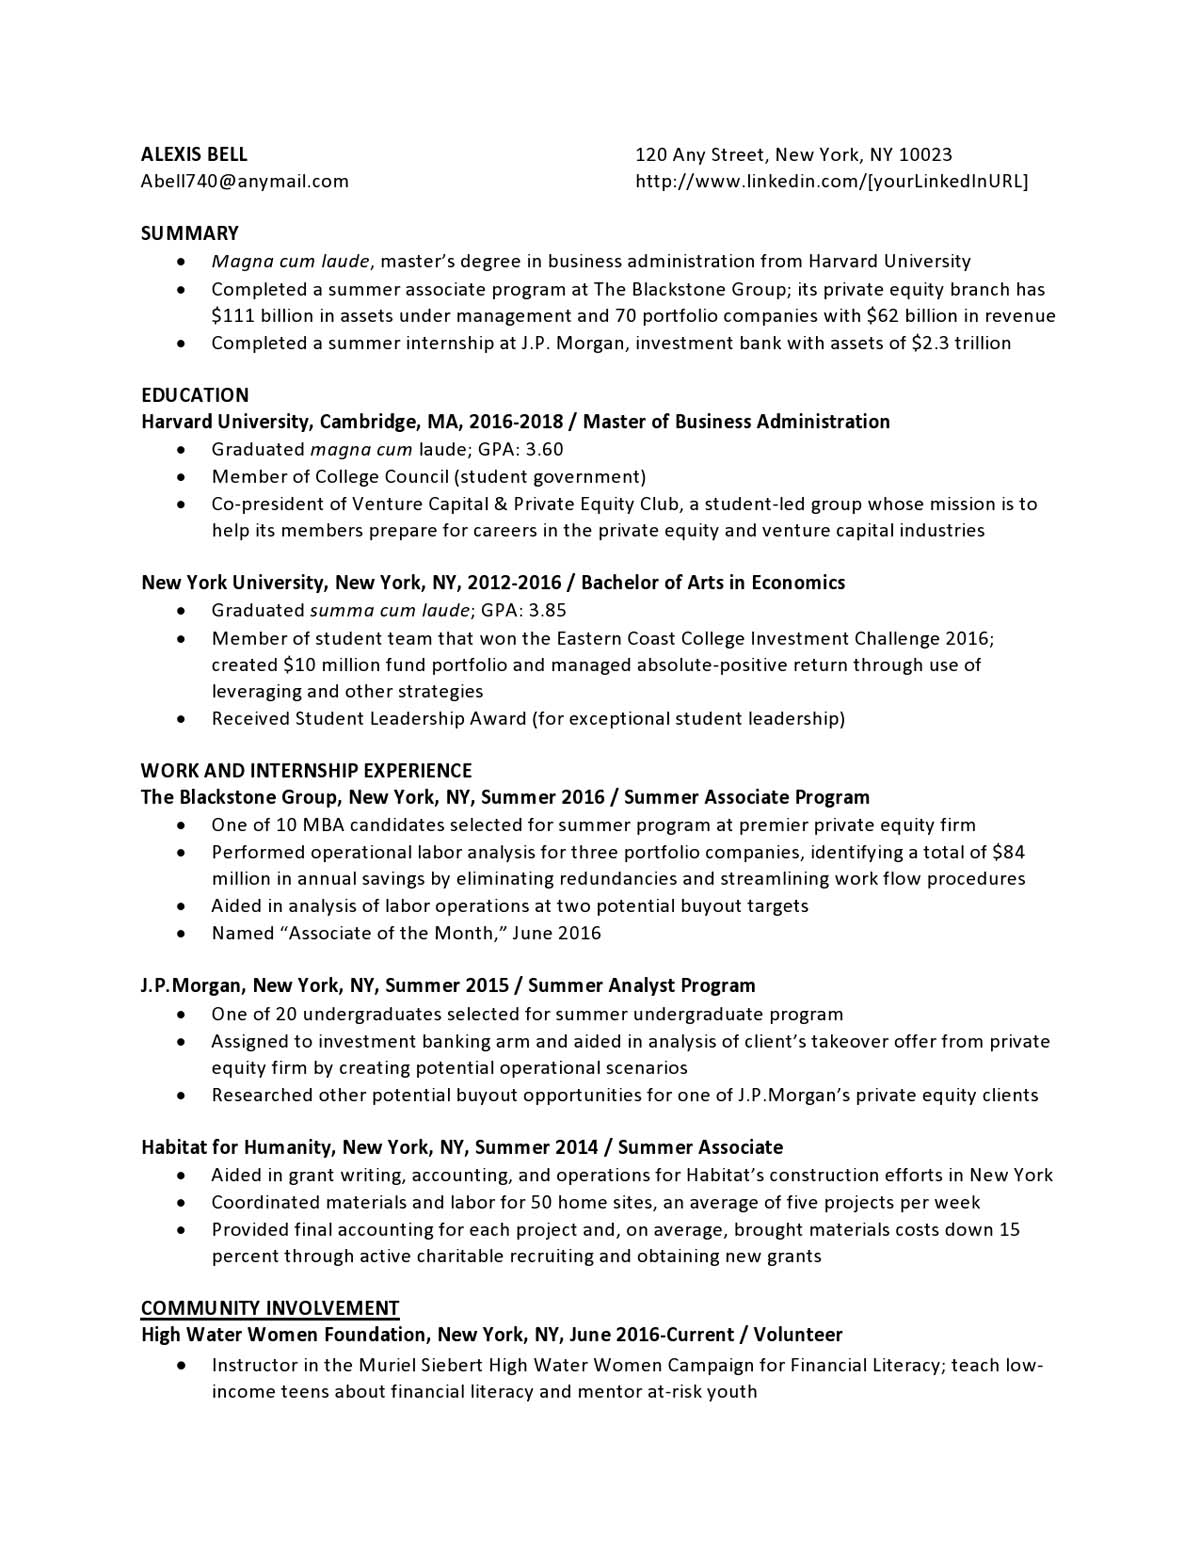 Private Equity Entry Level Resume Samples Templates Vault Com